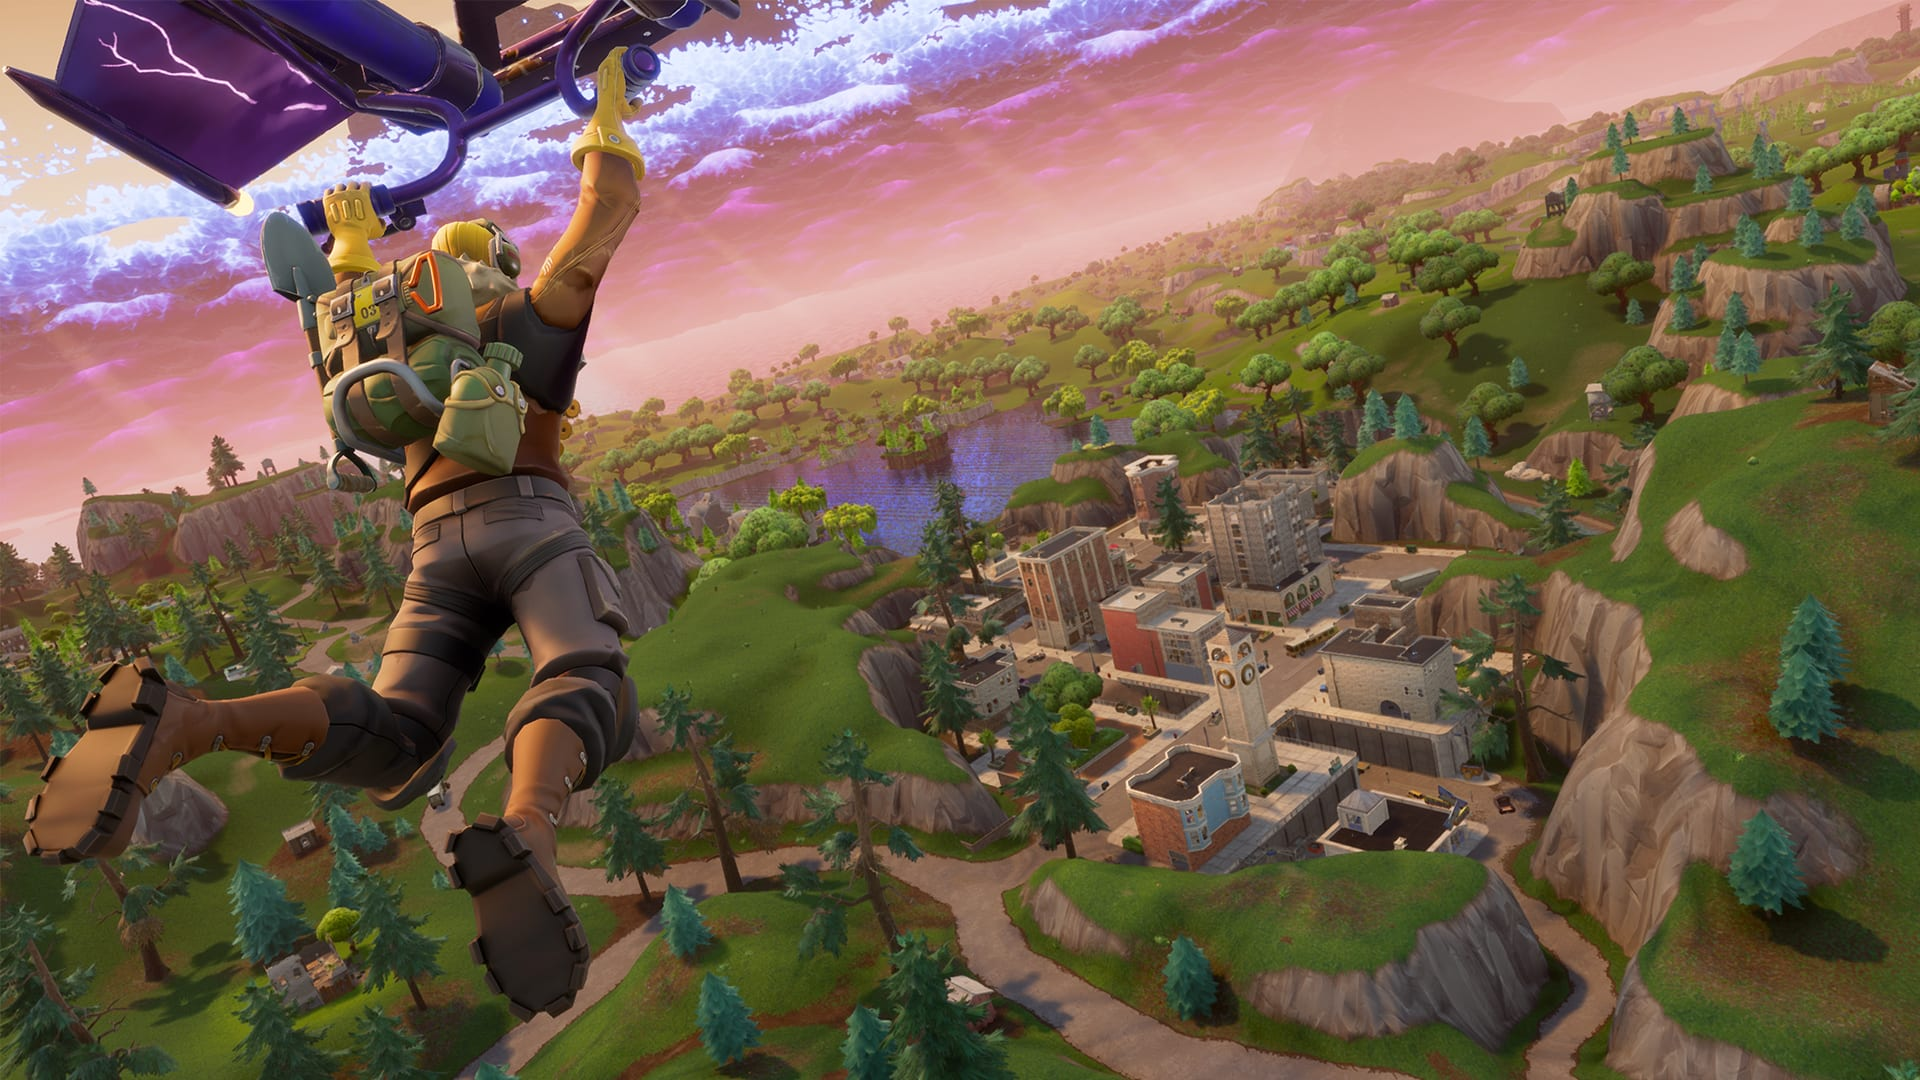 Where do Fortnite dances come from? The question speaks to one of the game's biggest scandals.